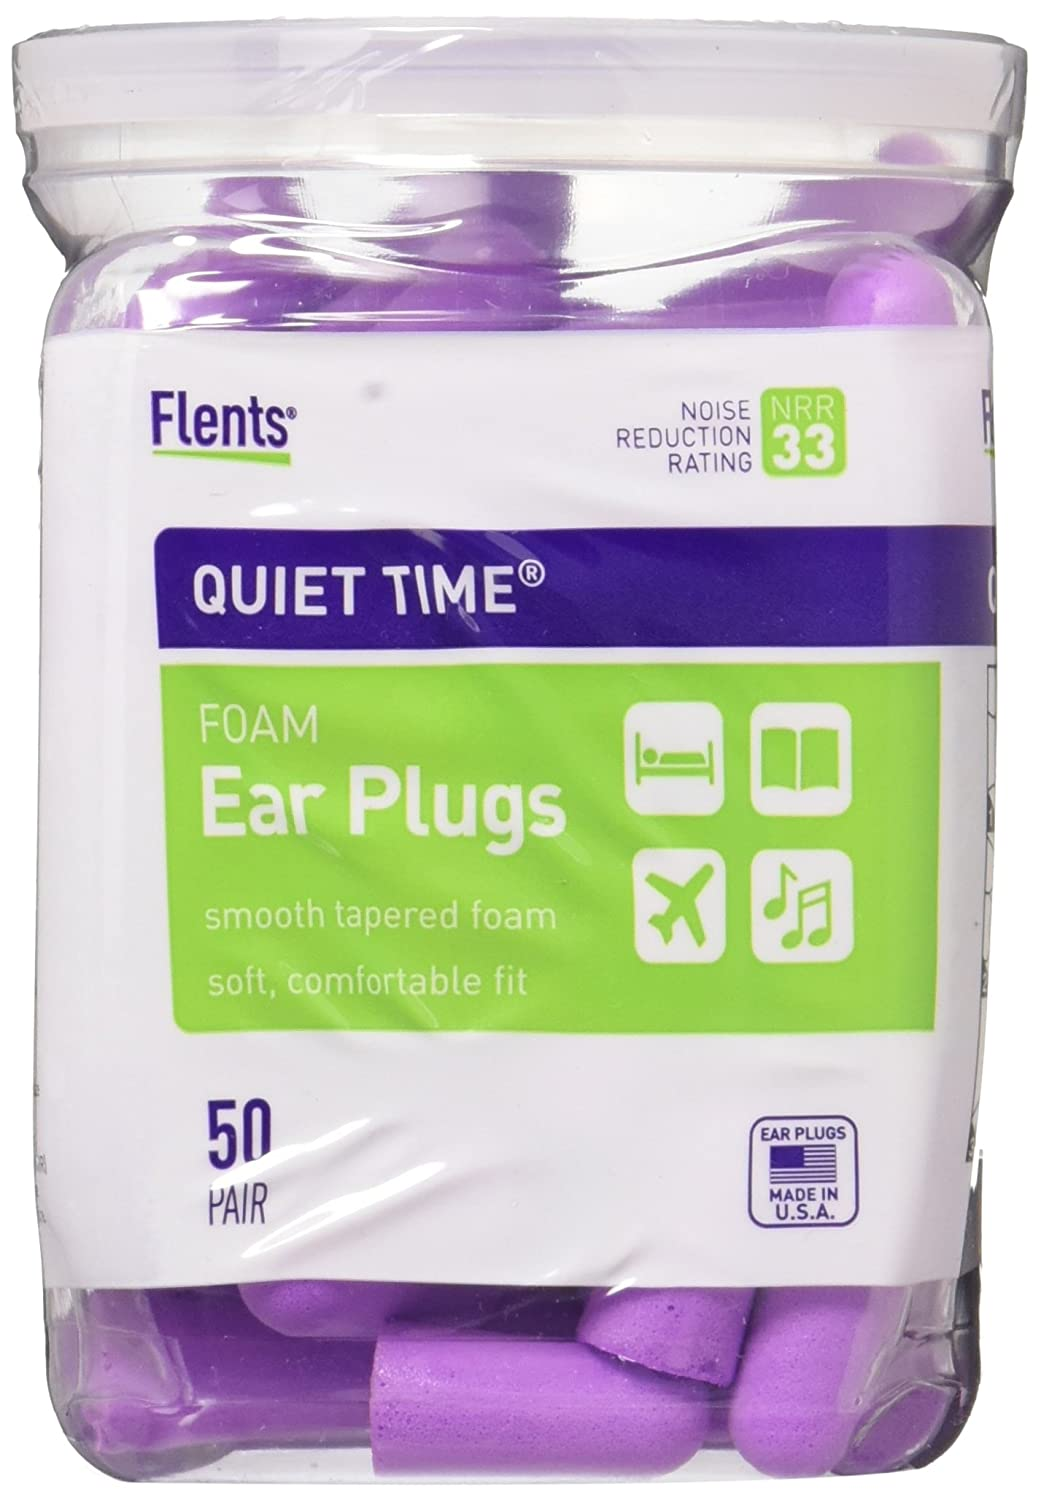 Flents Quiet Time Soft Comfort Ear Plugs 50 Pair (Pack of 2) by Flents by Apothecary Products   B00GGQIZ18